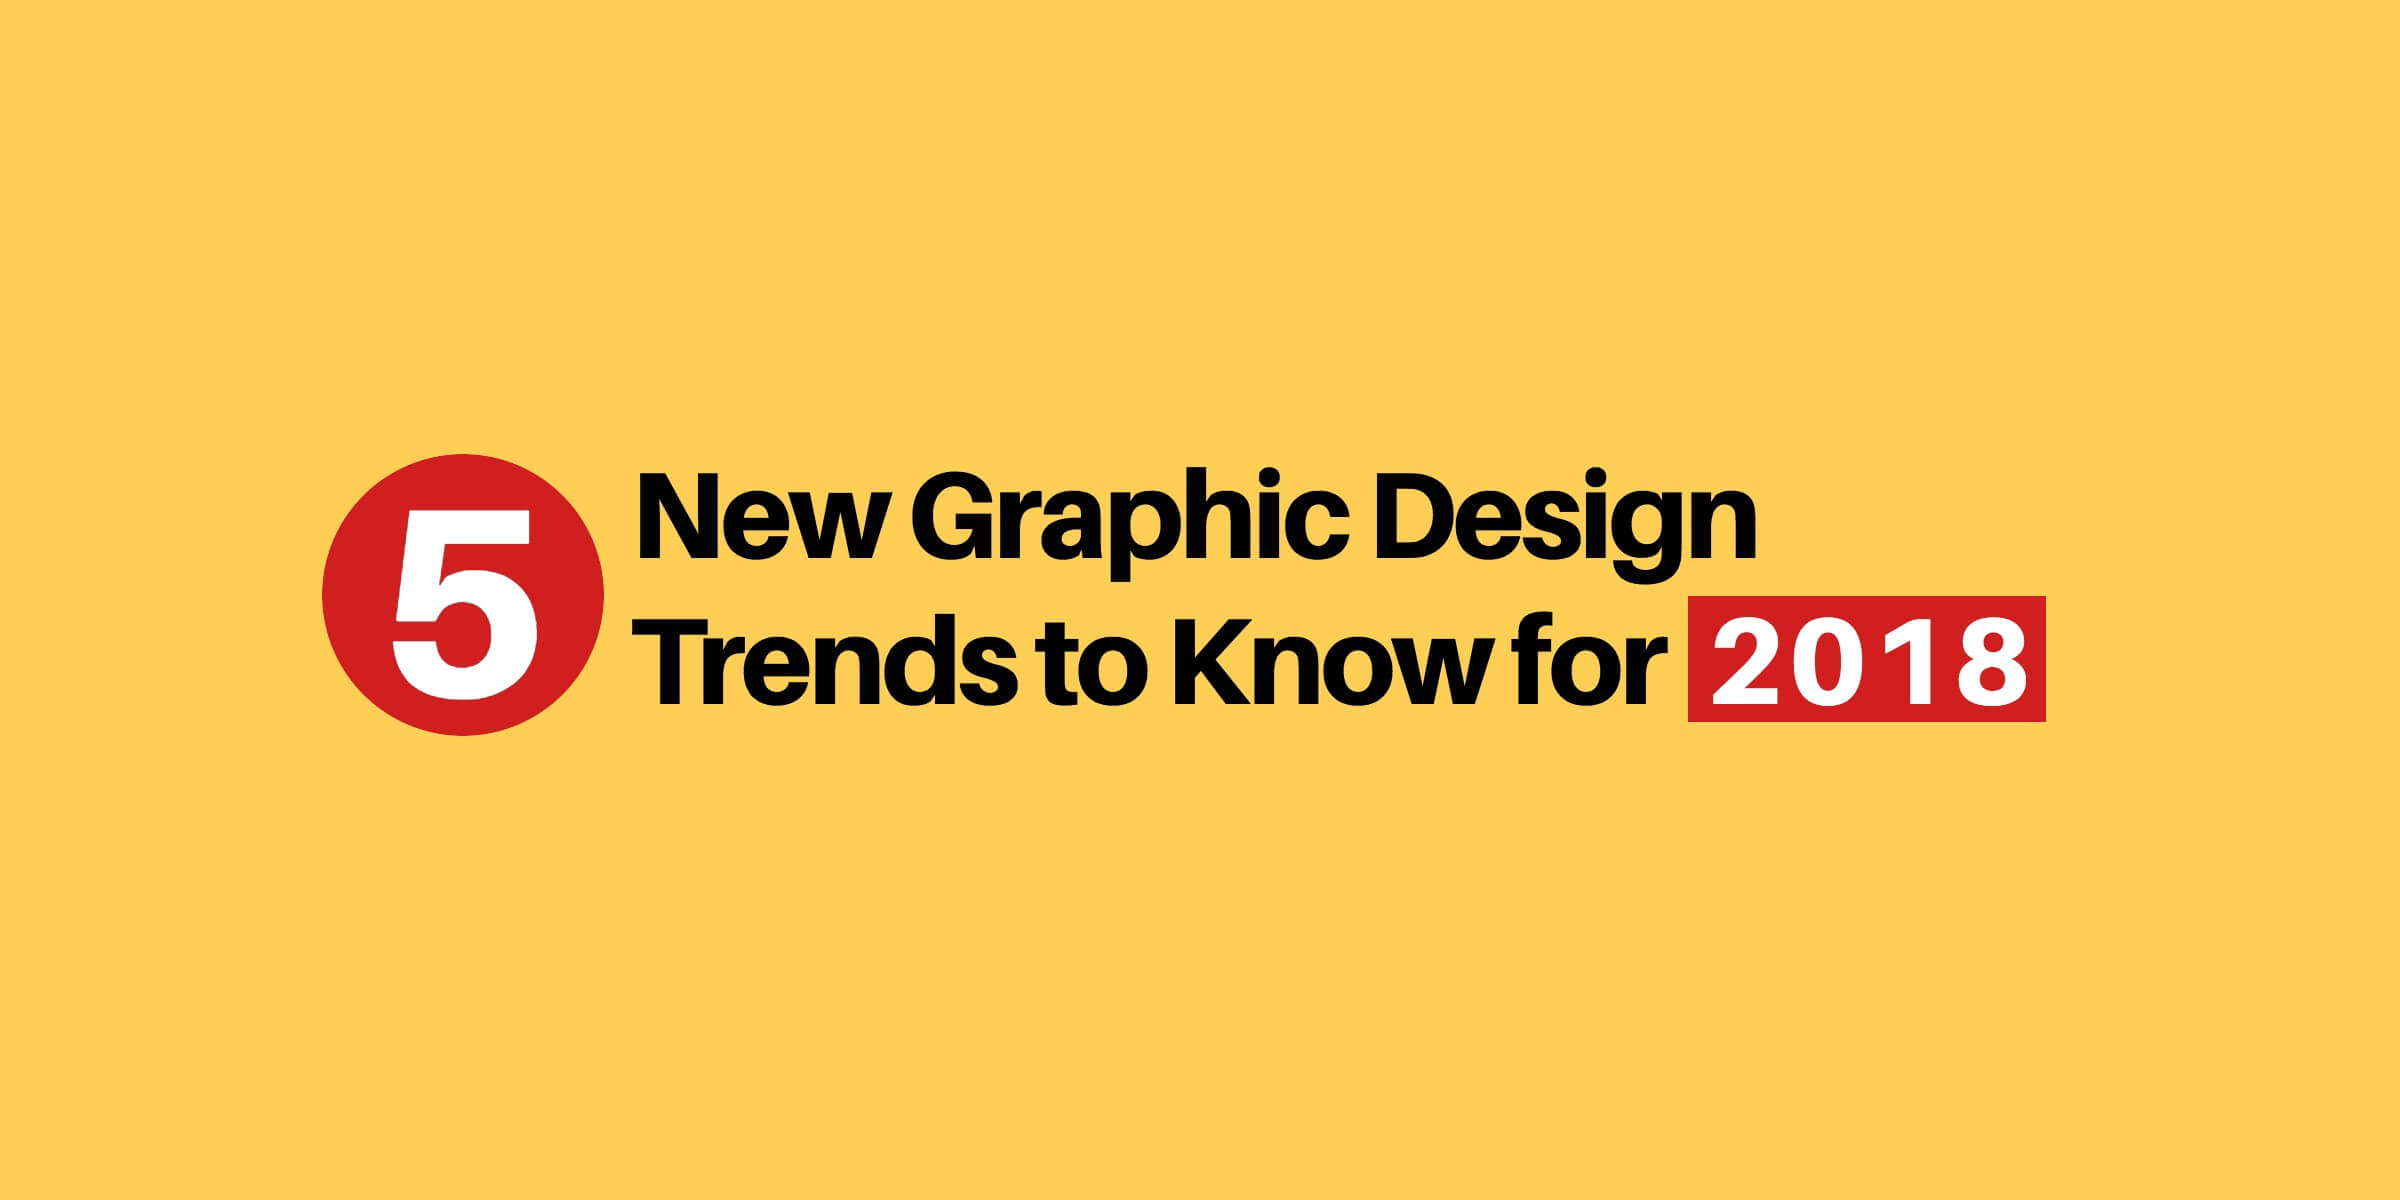 New Graphic Design Trends: 5 Graphic Design Trends To Know For 2018